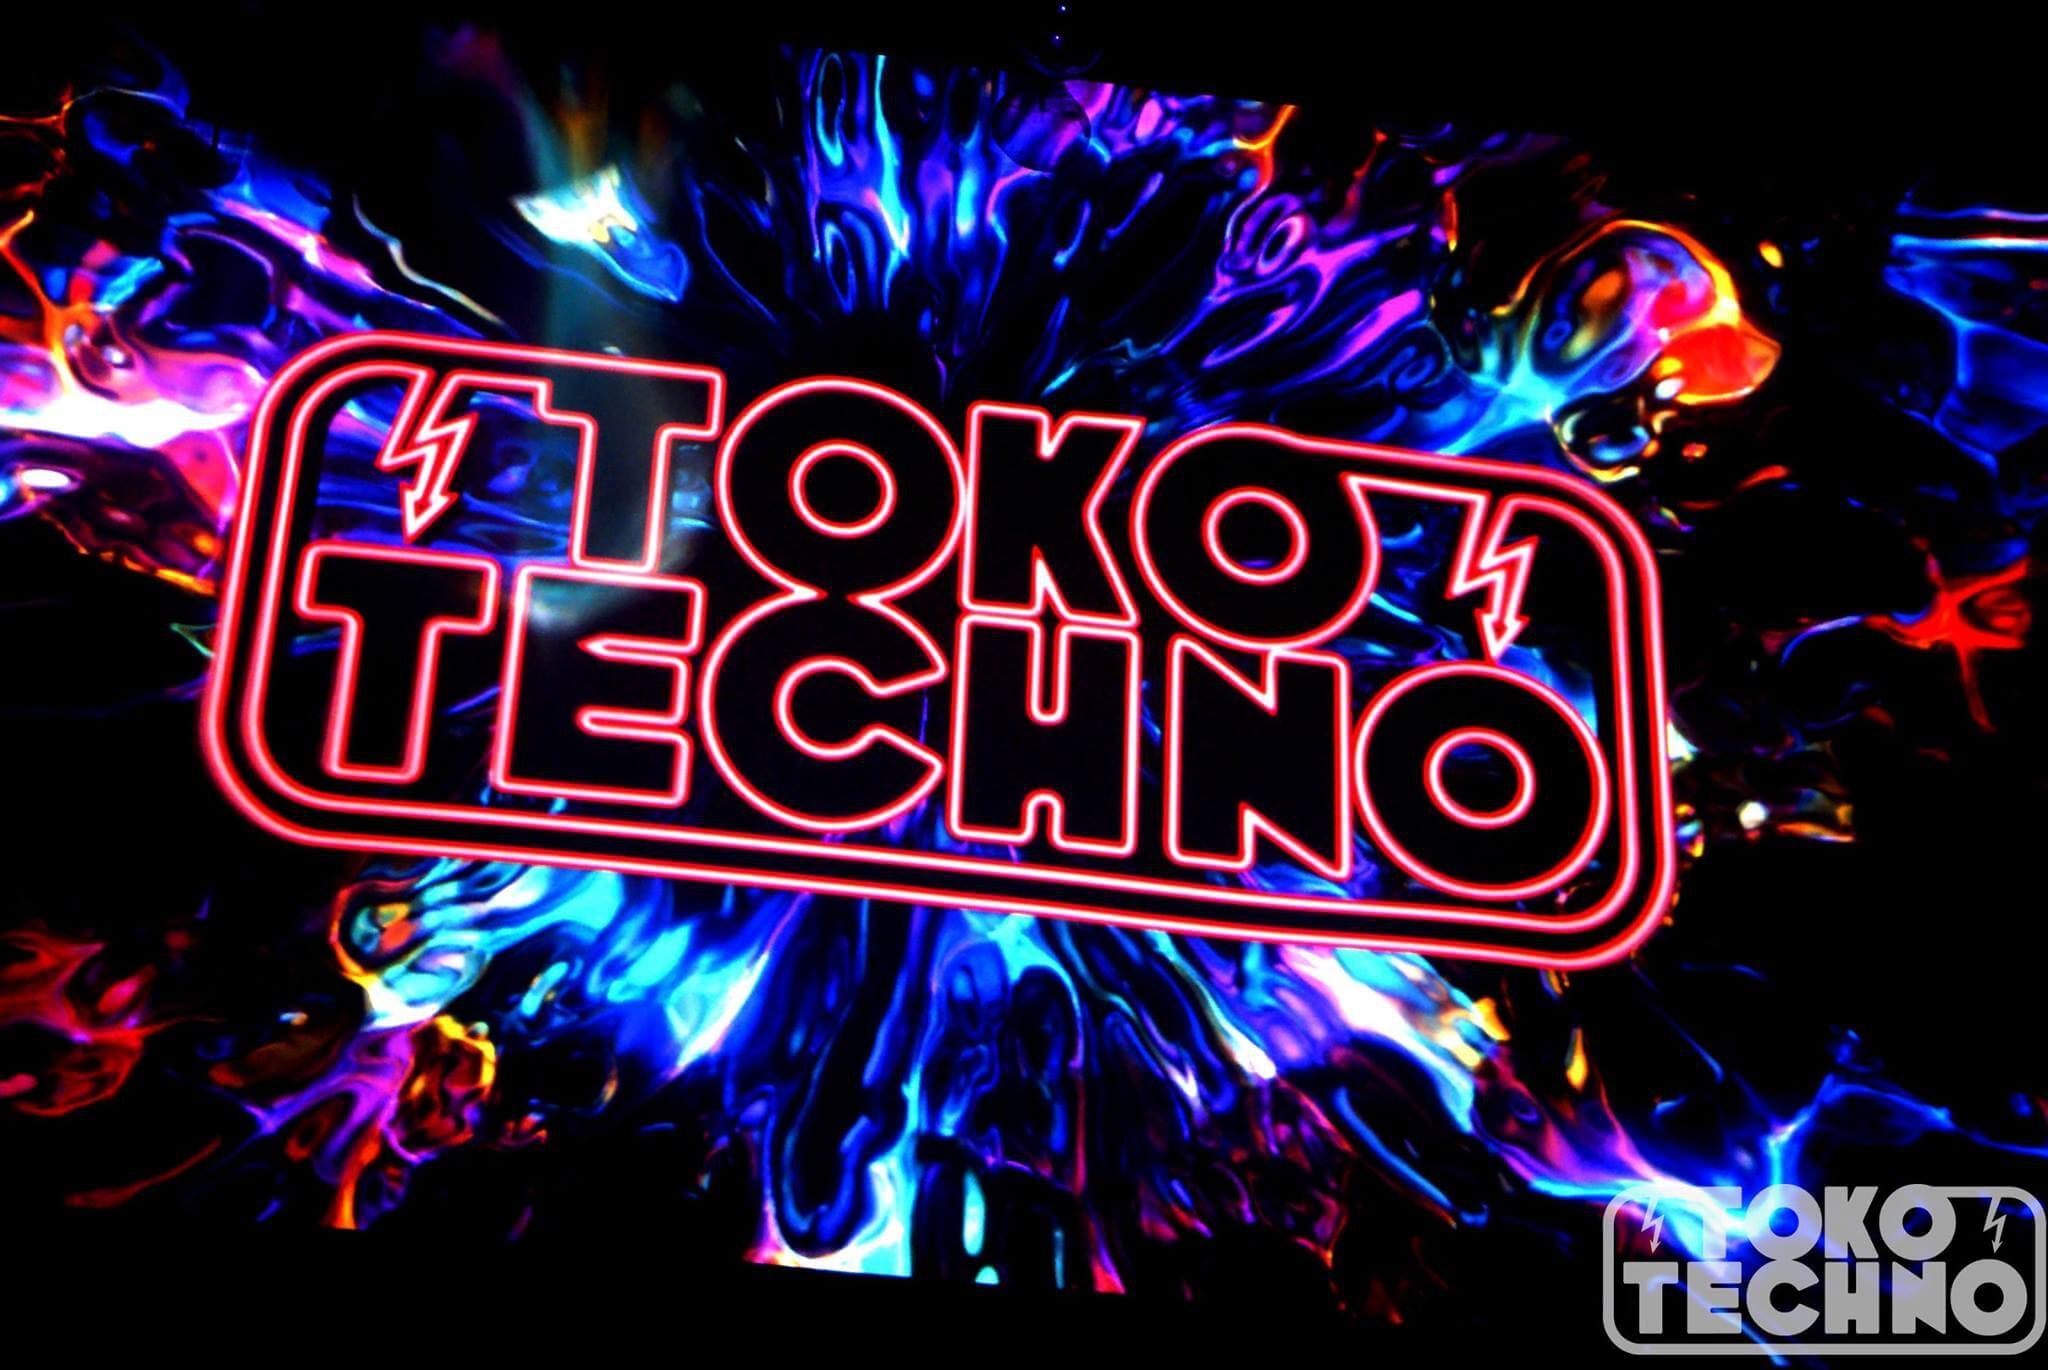 TOKO TECHNO 7TH EDITION – Epic Visuals